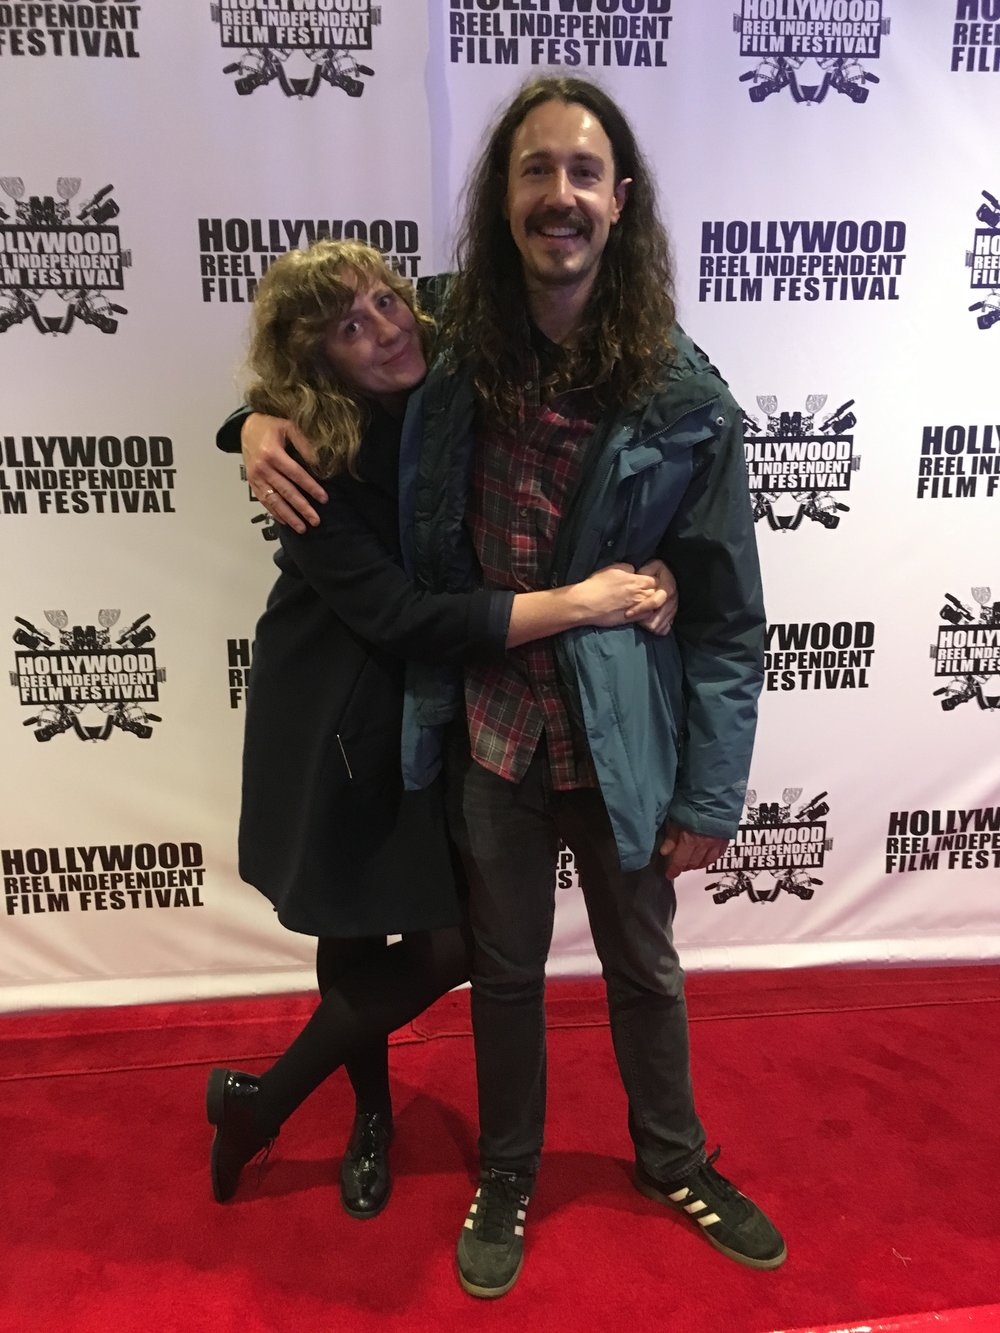 Chippy and Dustin at the Hollywood Reel Independent Film Festival (HRIFF) for Fear, Love, and Agoraphobia.